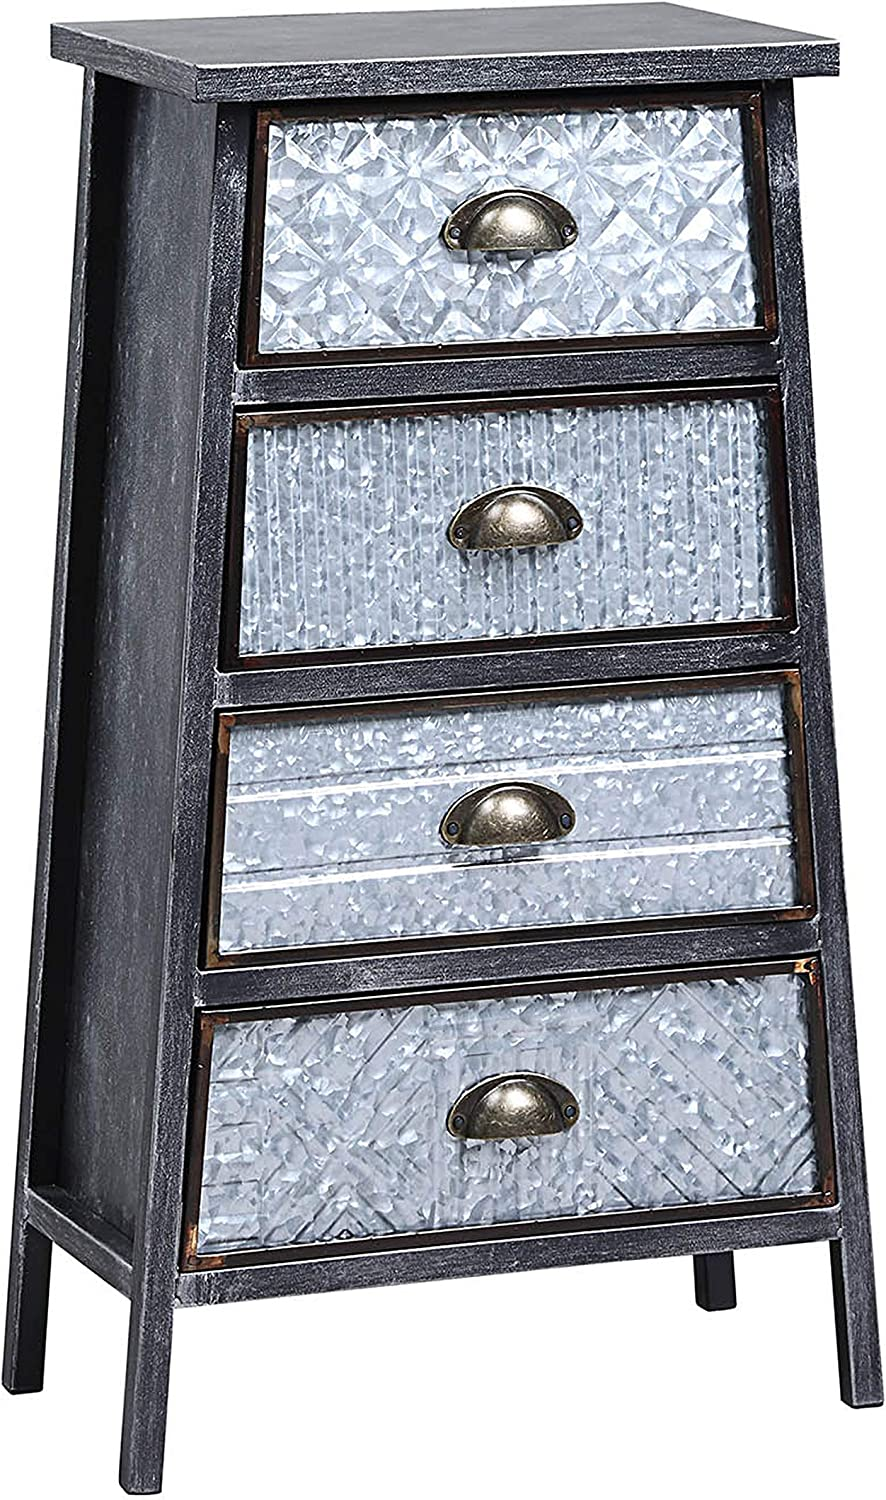 4D Concepts Armata Collection DRAWER CHEST, Multi textured metal Gray and Galvanized